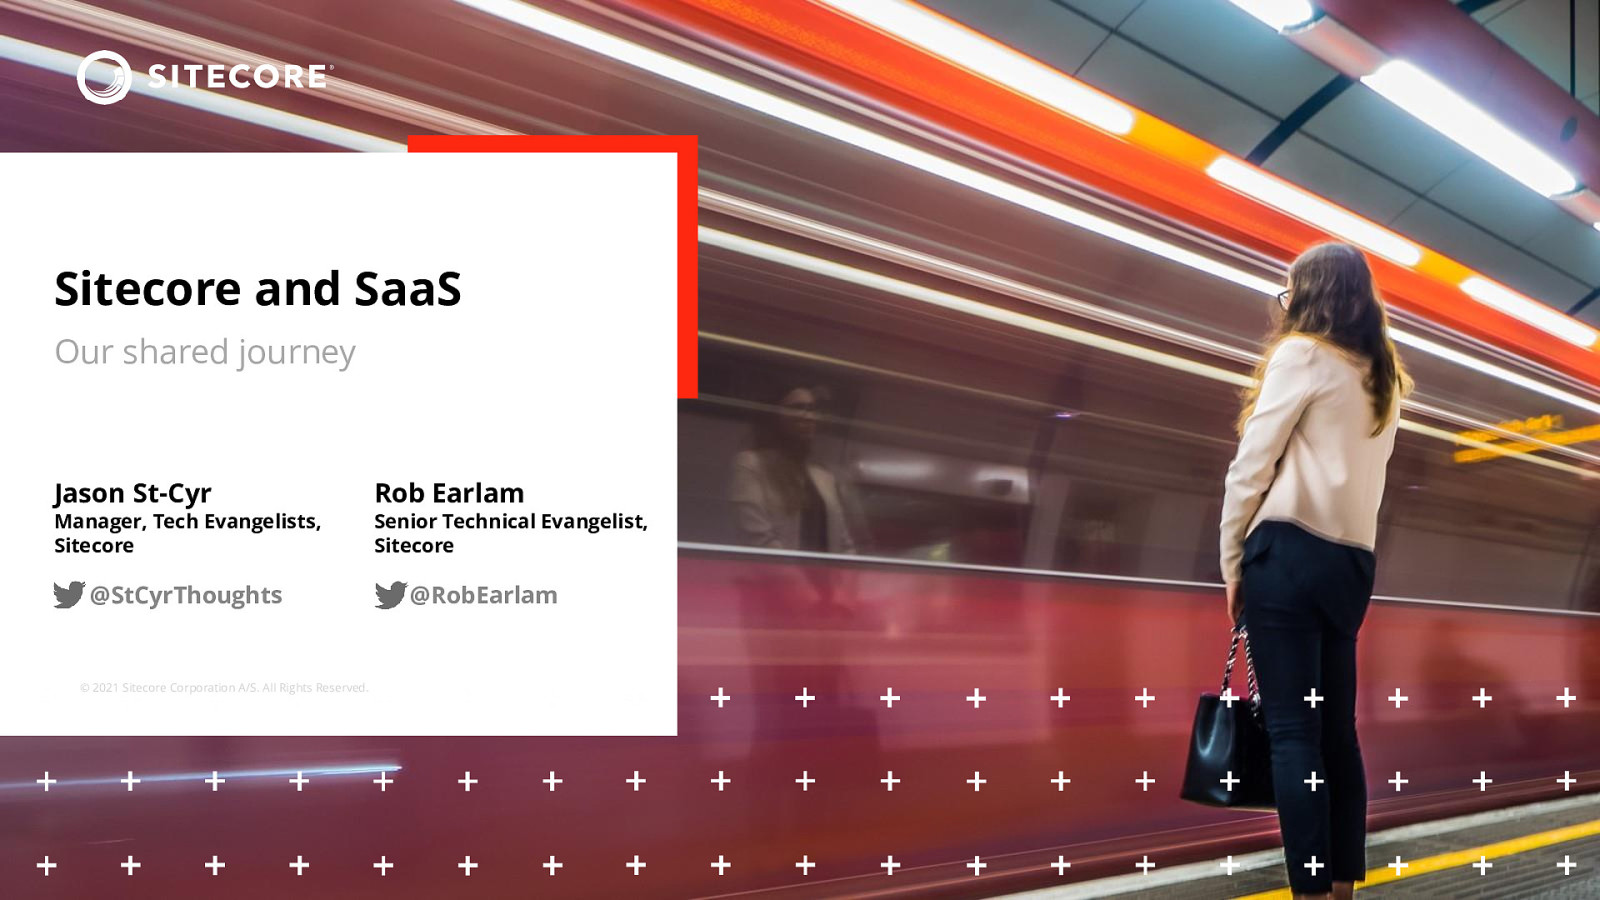 Sitecore and SaaS - Our shared journey